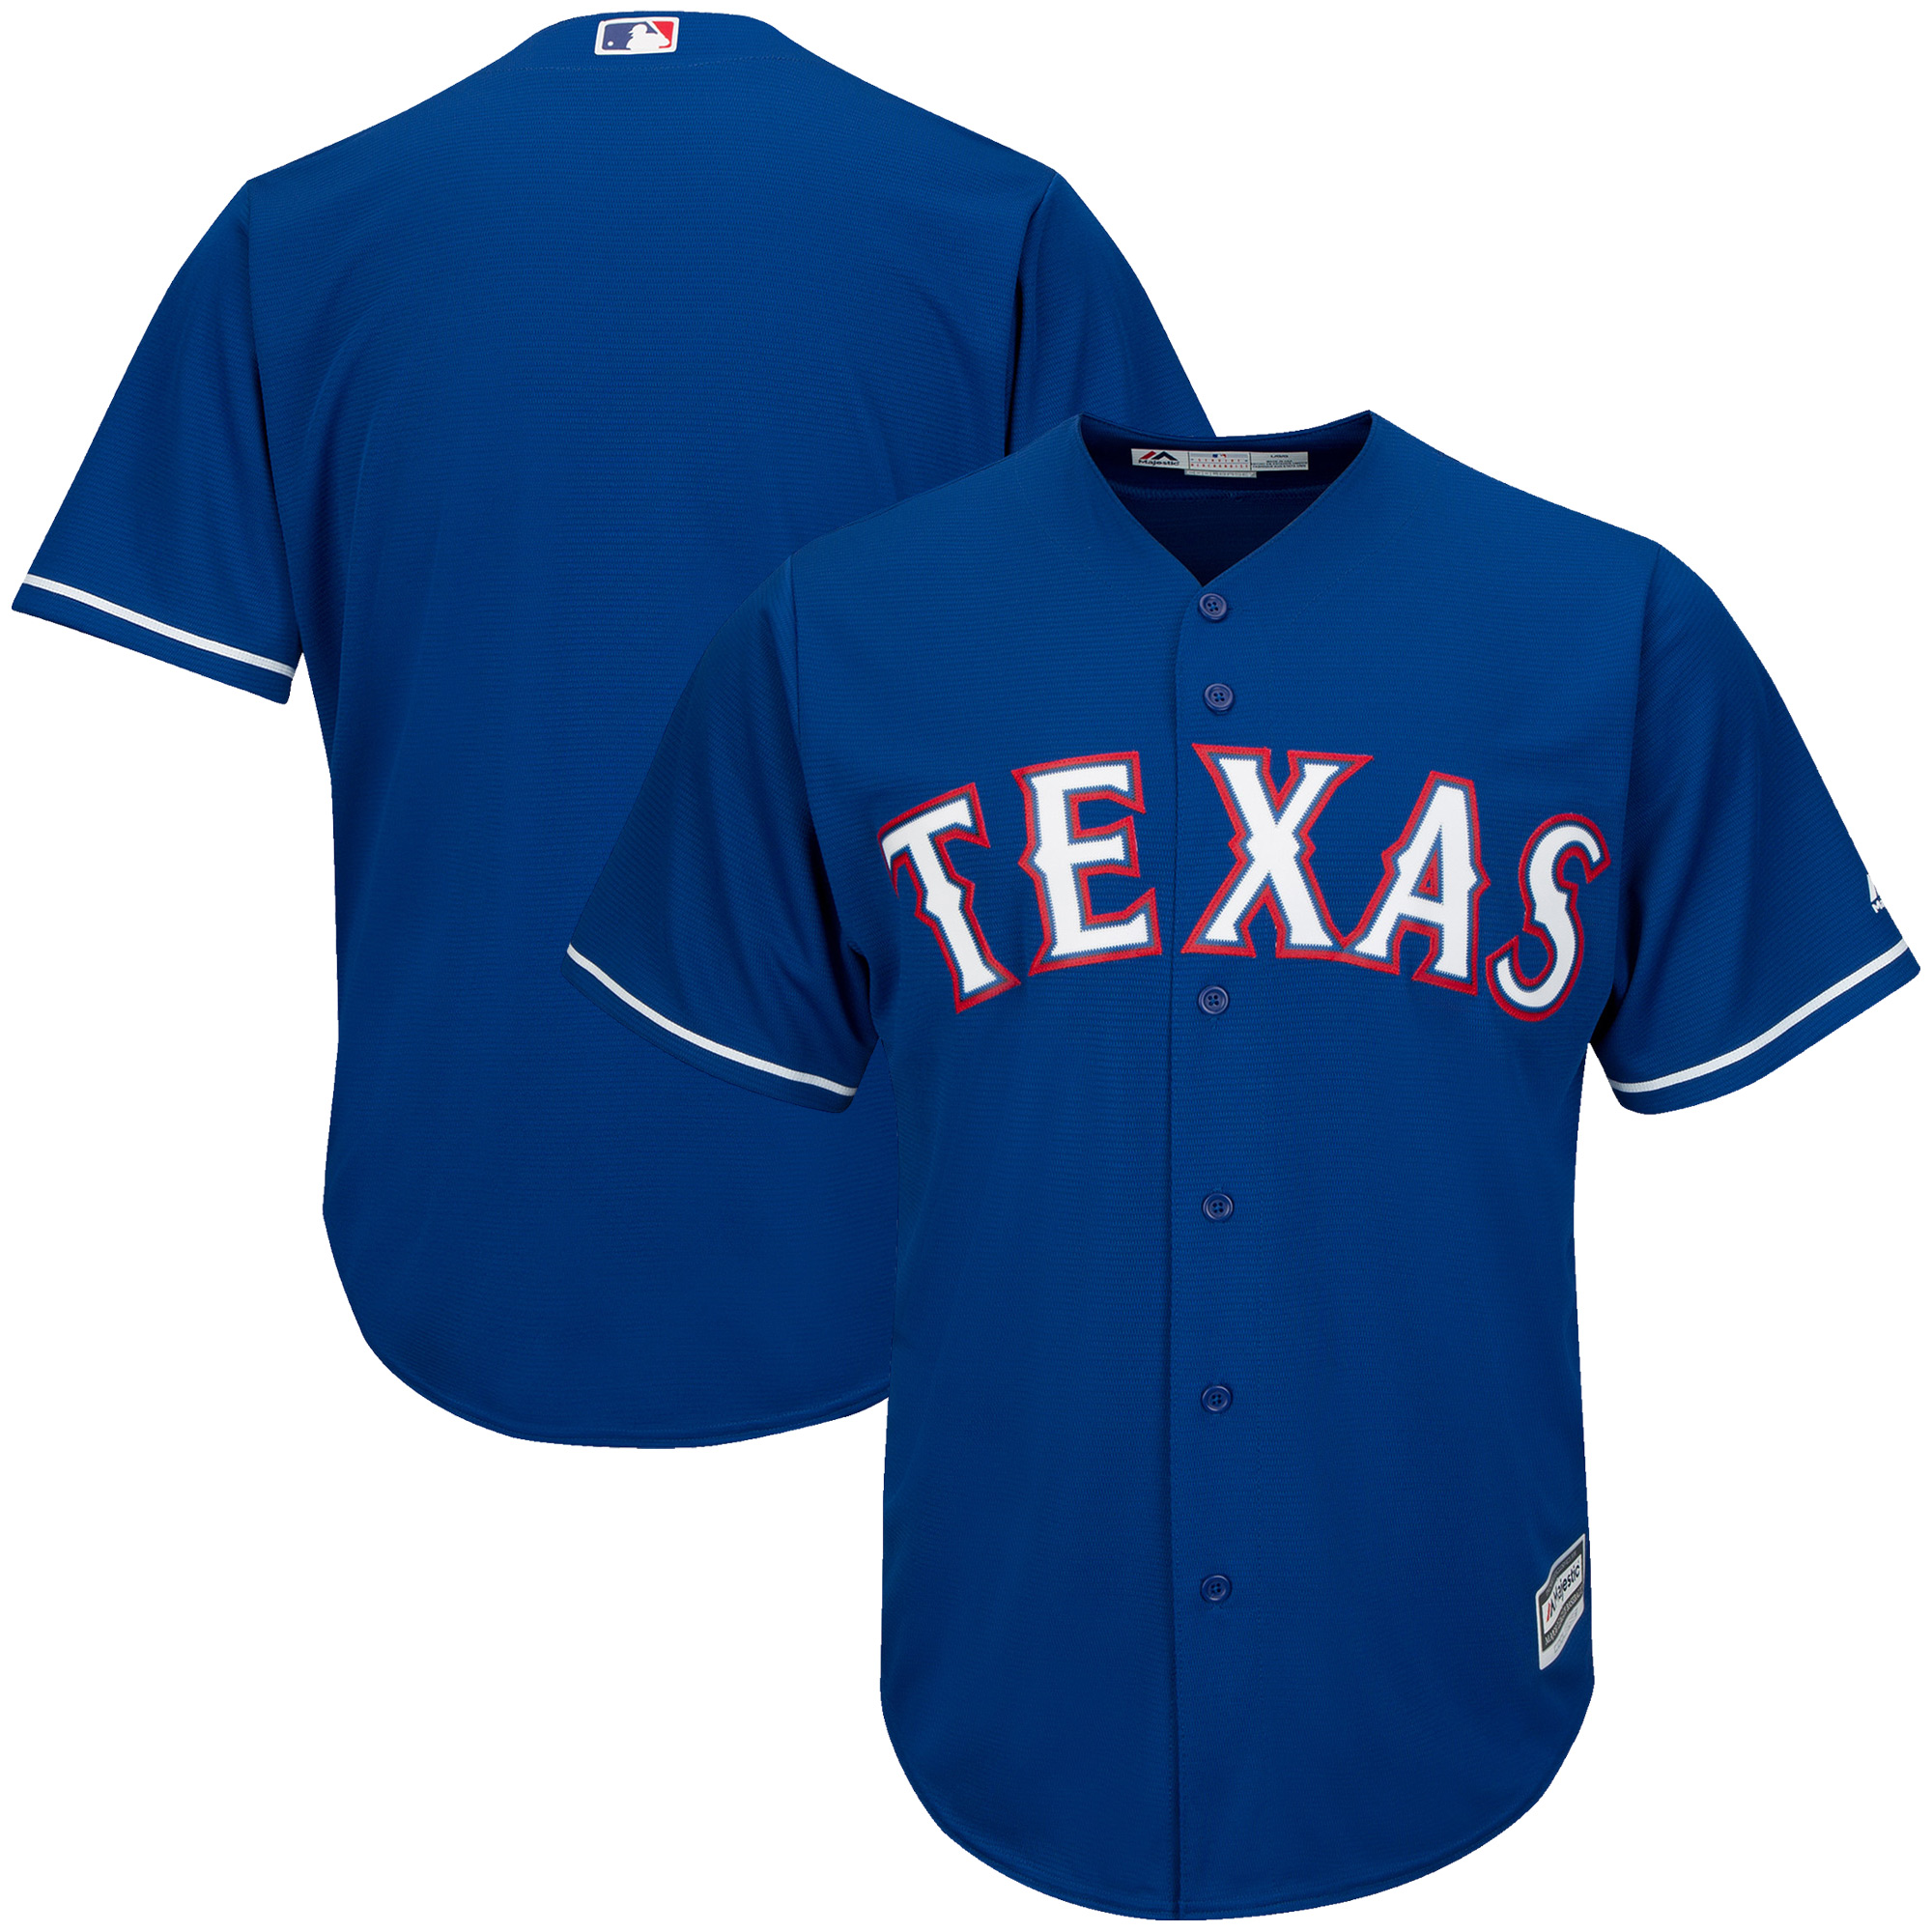 Texas Rangers Majestic Official Cool Base Jersey - Royal